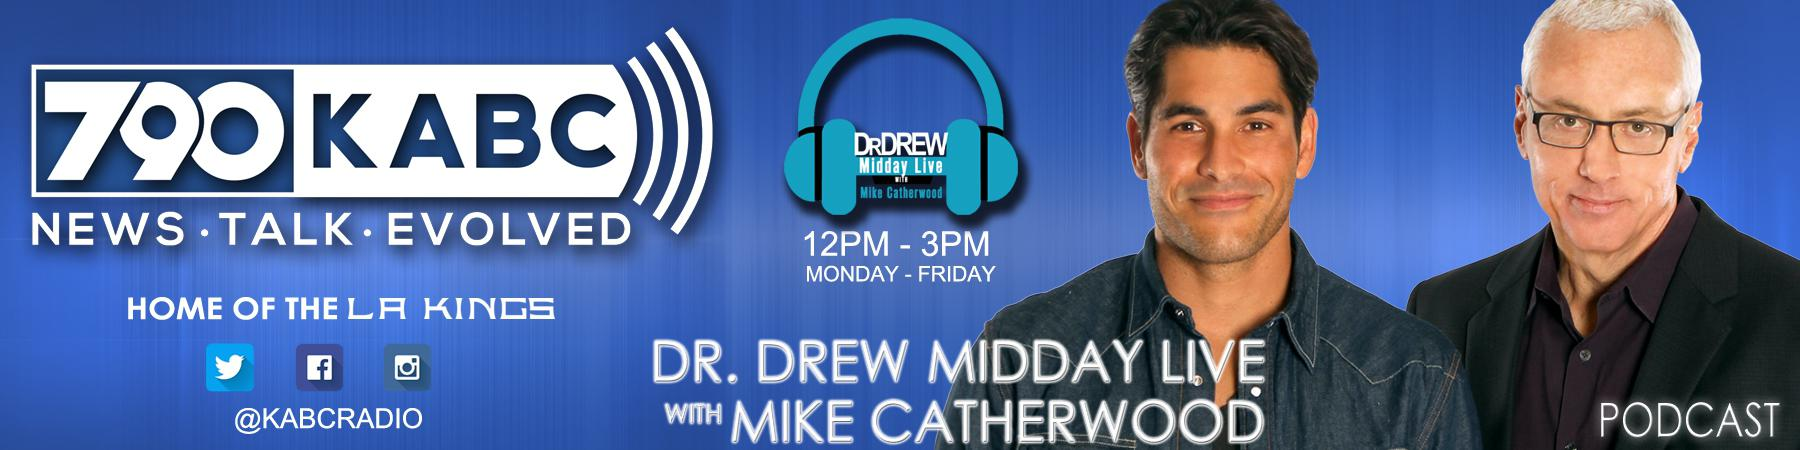 Dr Drew Midday Live Podcast1800x450 Blue